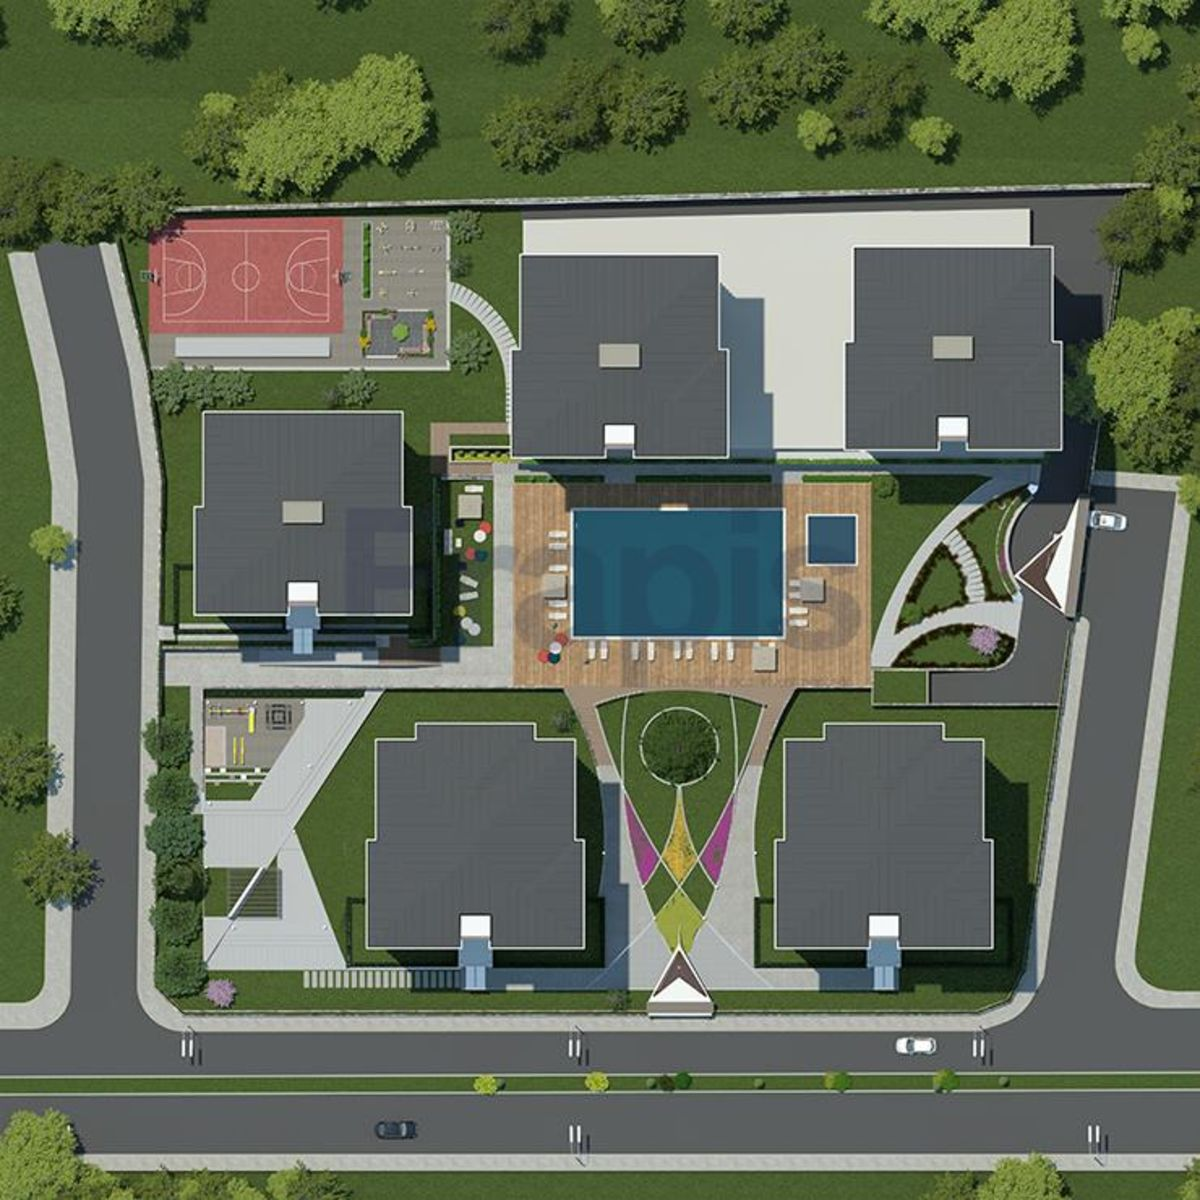 property for sale Trabzon - 136